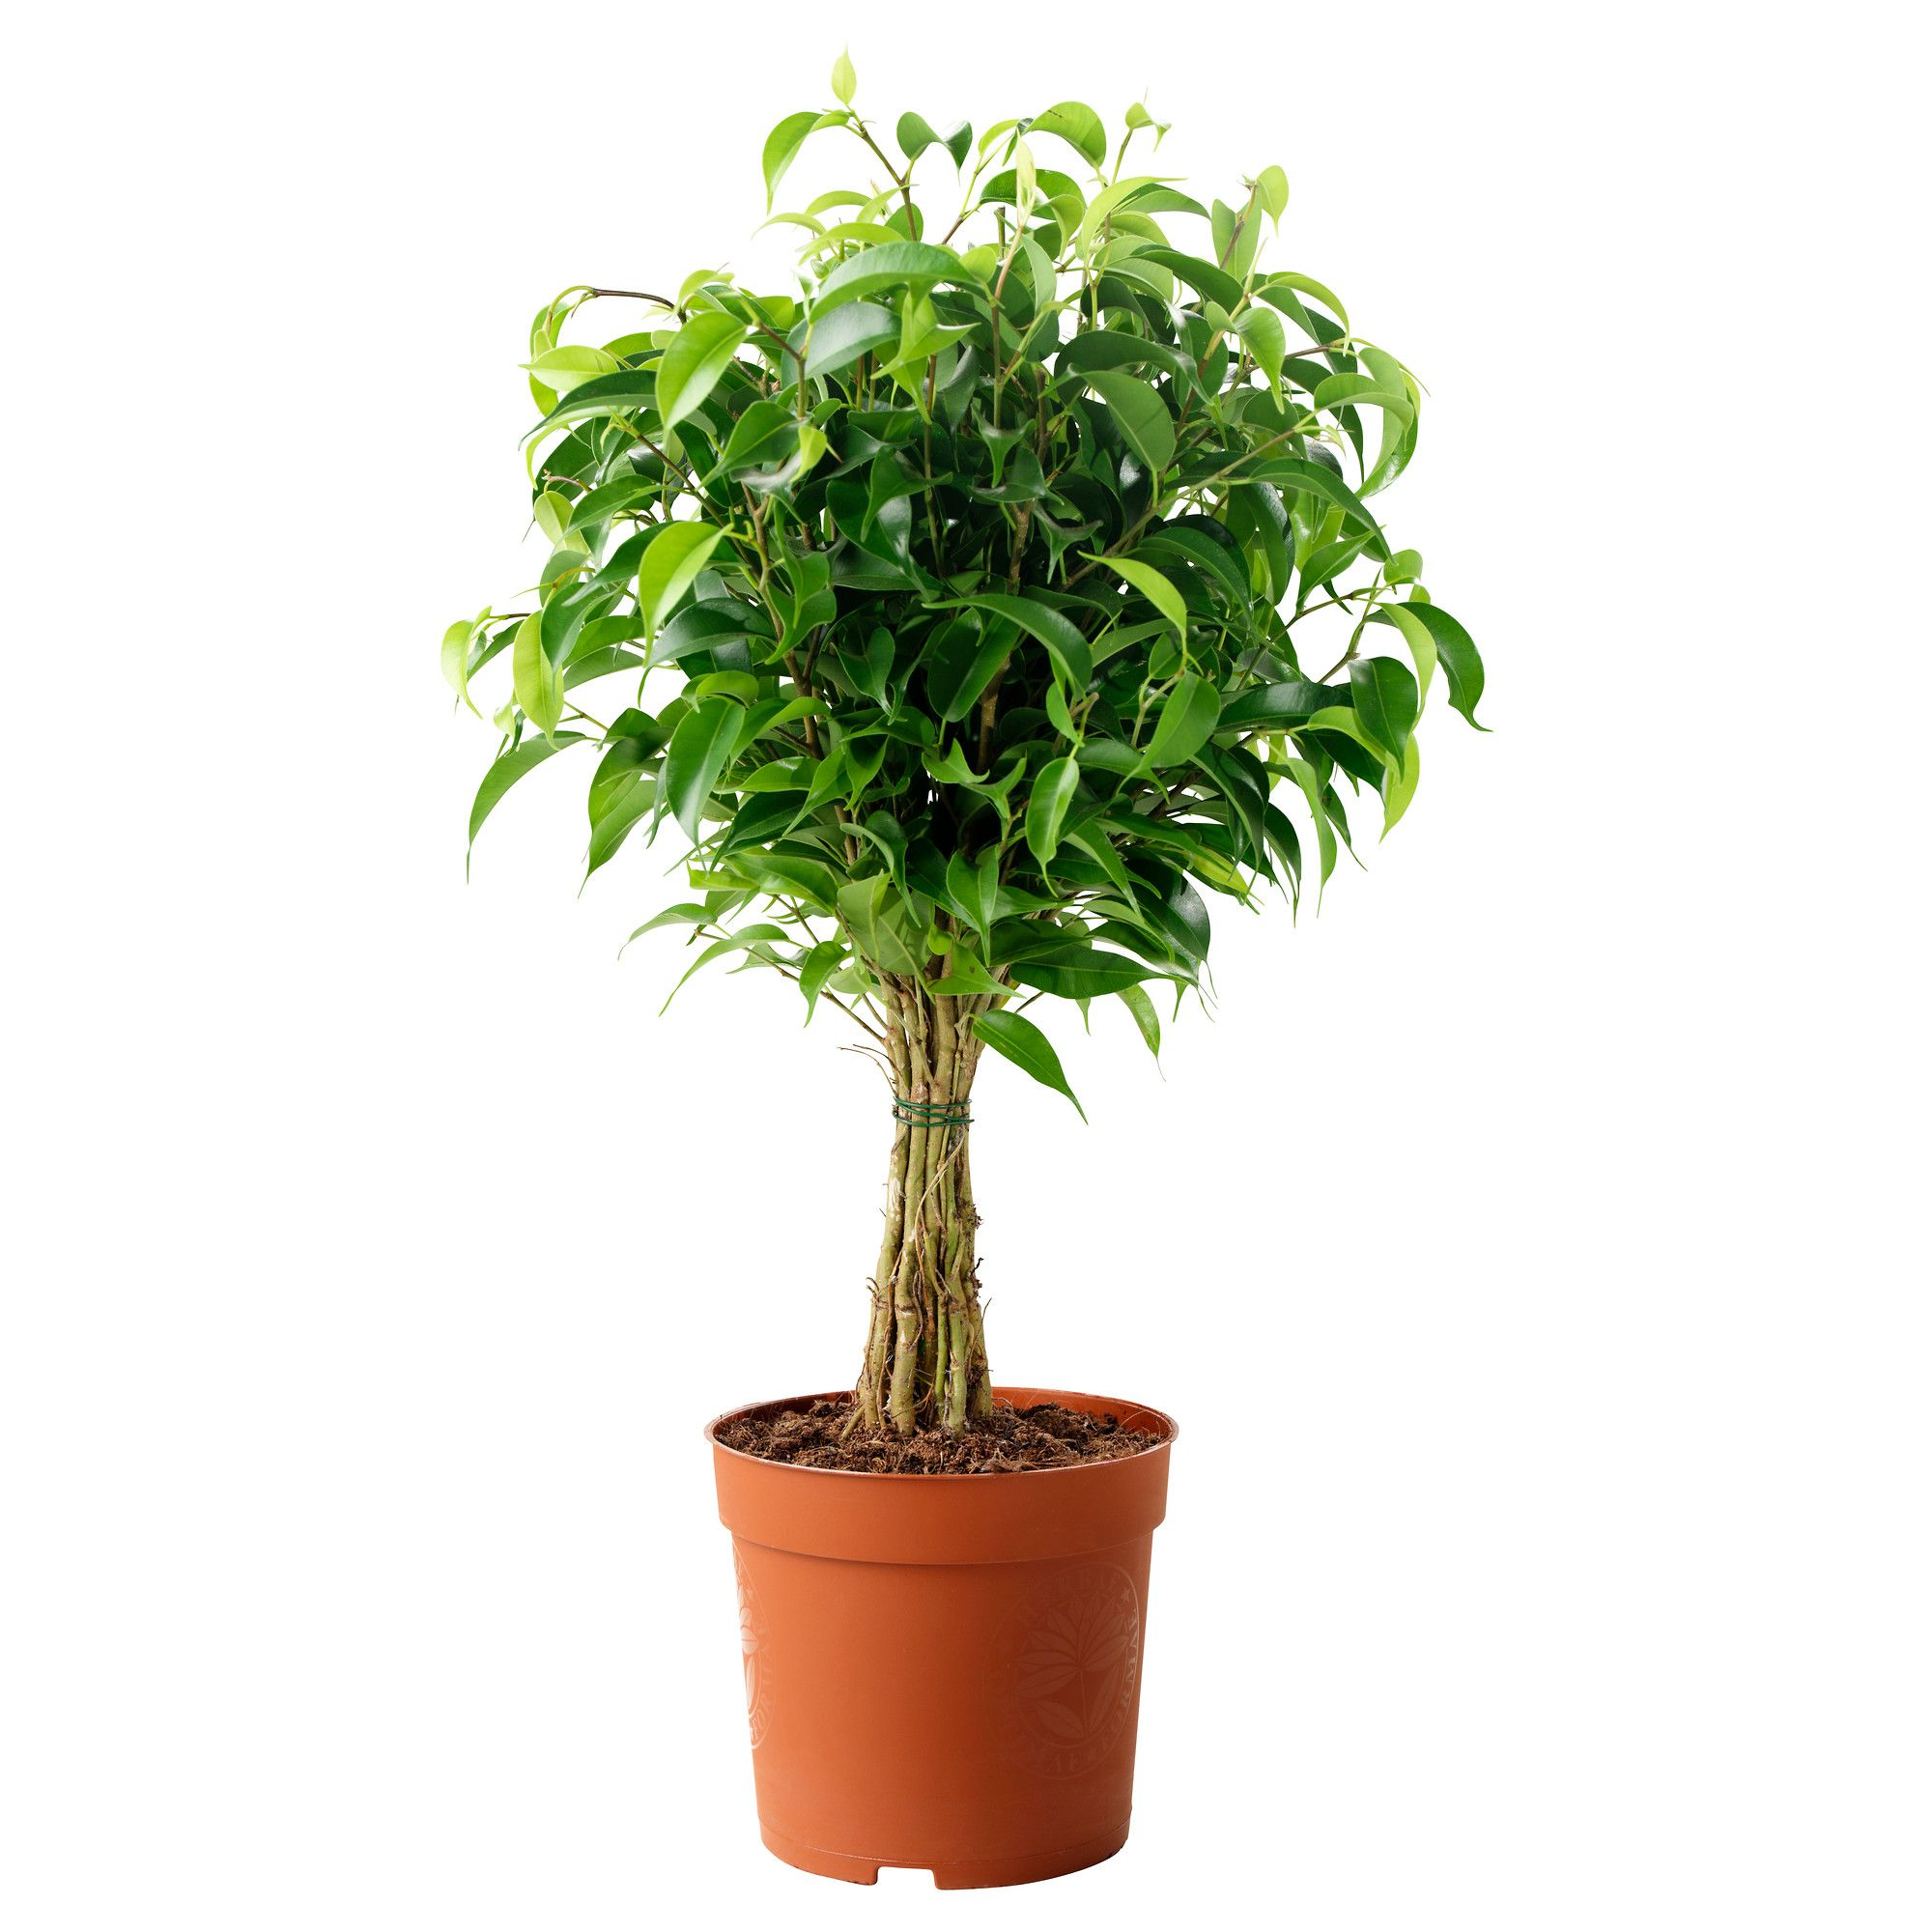 Ficus /'Natasja/' Crazy Tree in a 12cm pot